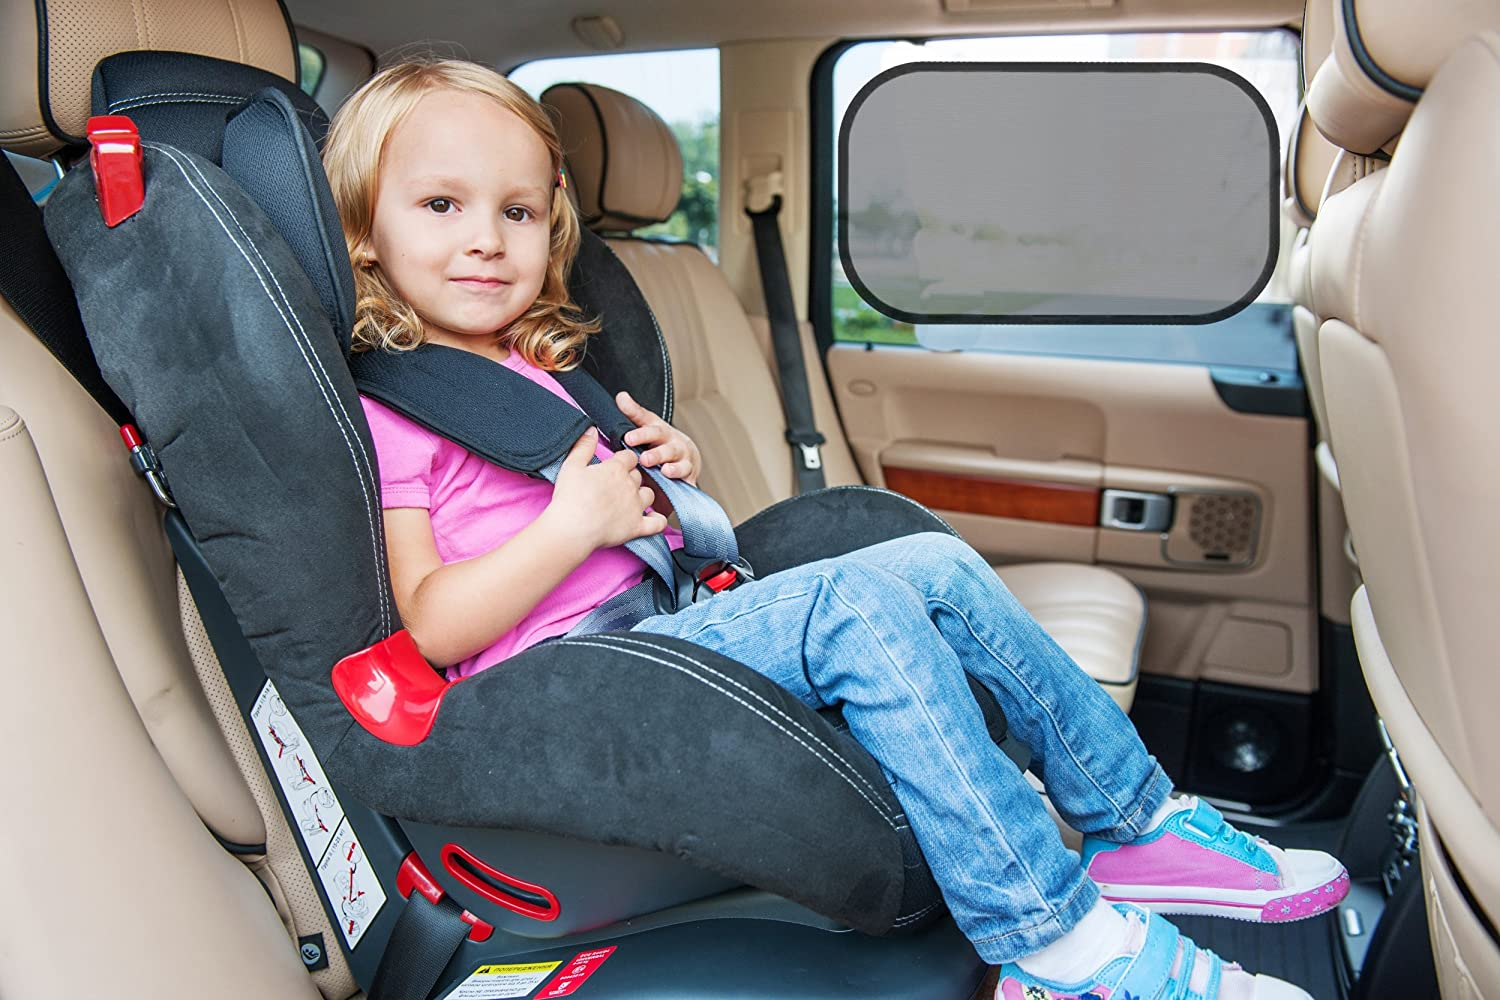 Sticks with Static Cling and Suction Cups OZNC Global Ithalat Ihracat Ltd Sti. Made with Quality Mesh Convenient Storage//Travel Pouch Car Sunshades Stop 98/% of Harmful UV Rays with 2 Shades for Side Windows and 1 Rear Window